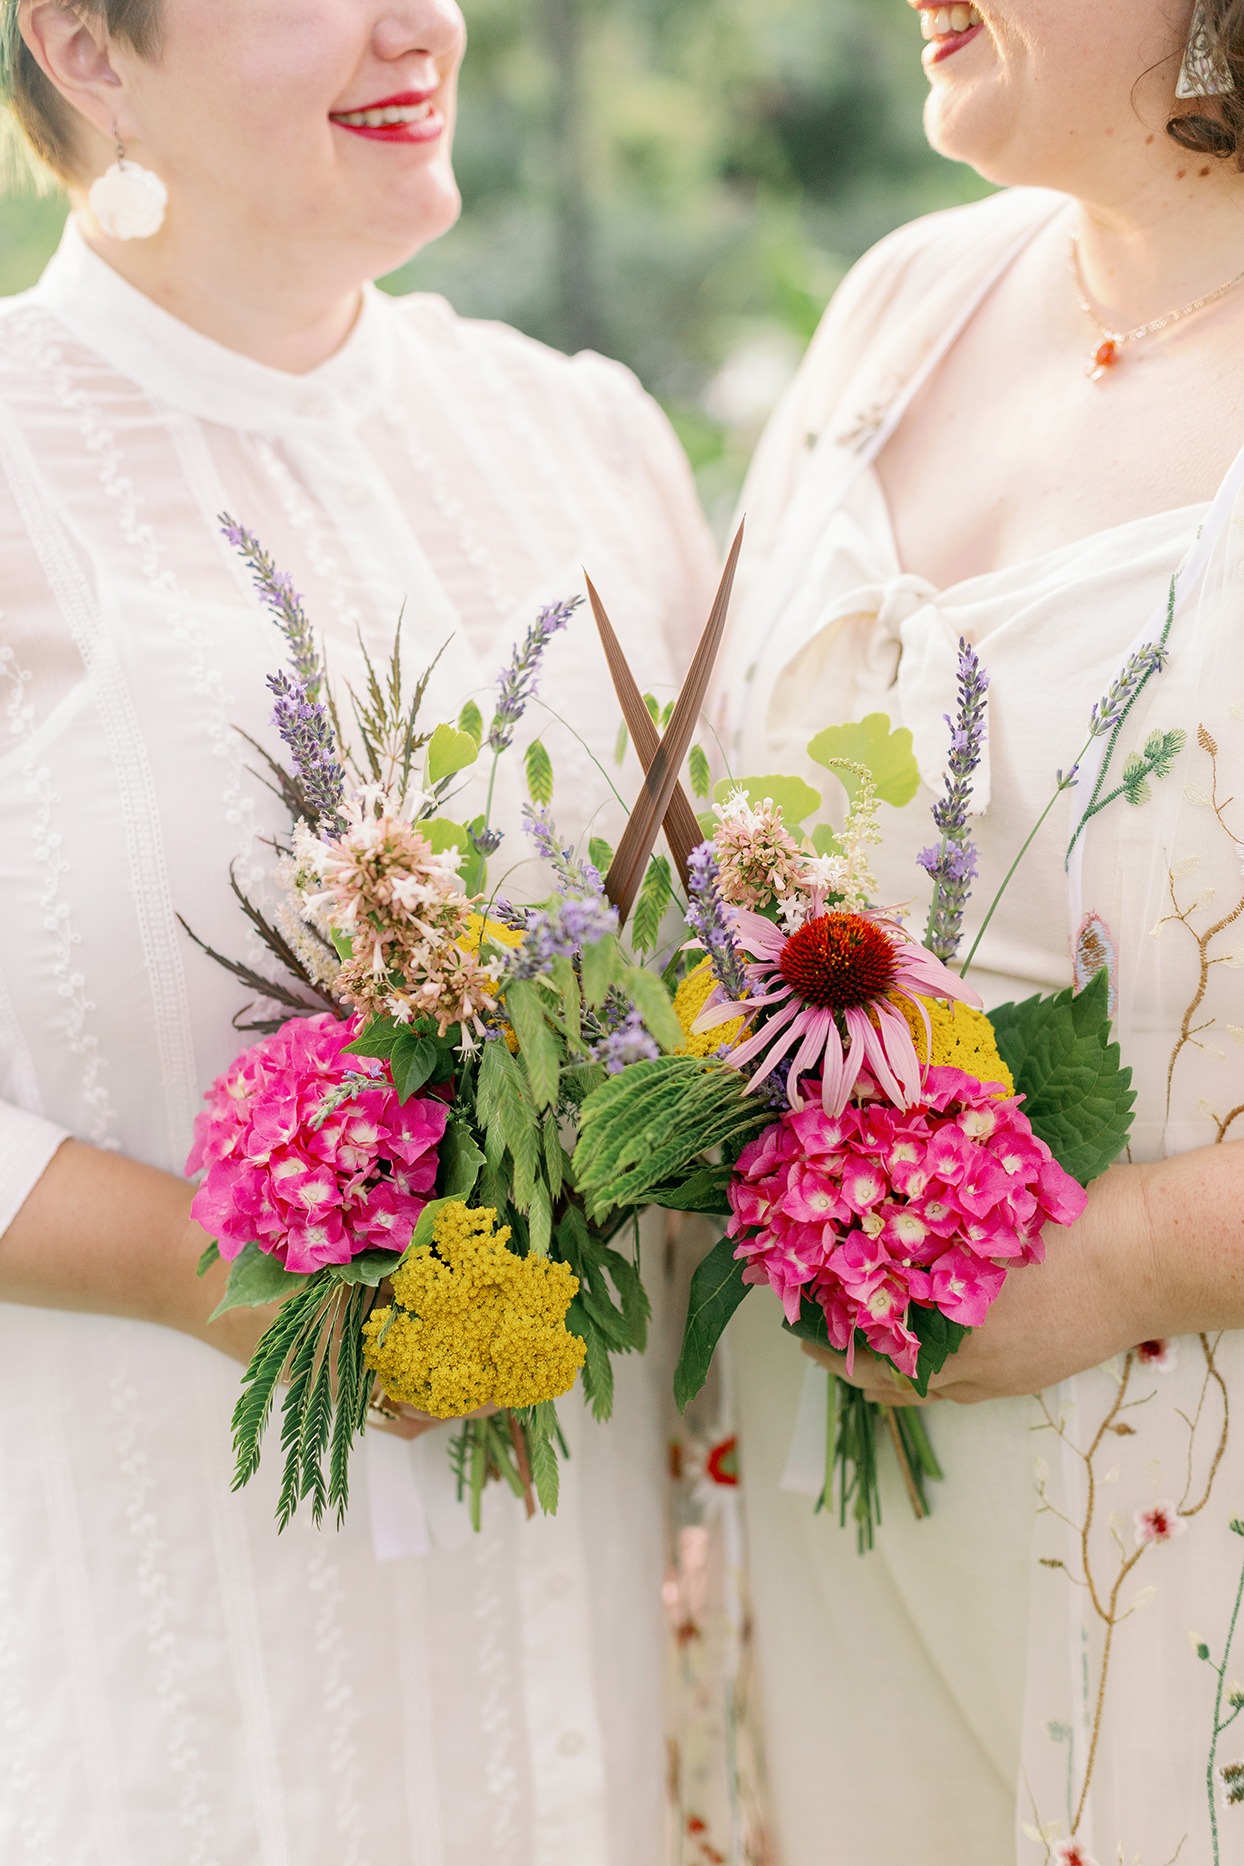 brides smiling holding floral bouquets from their garden